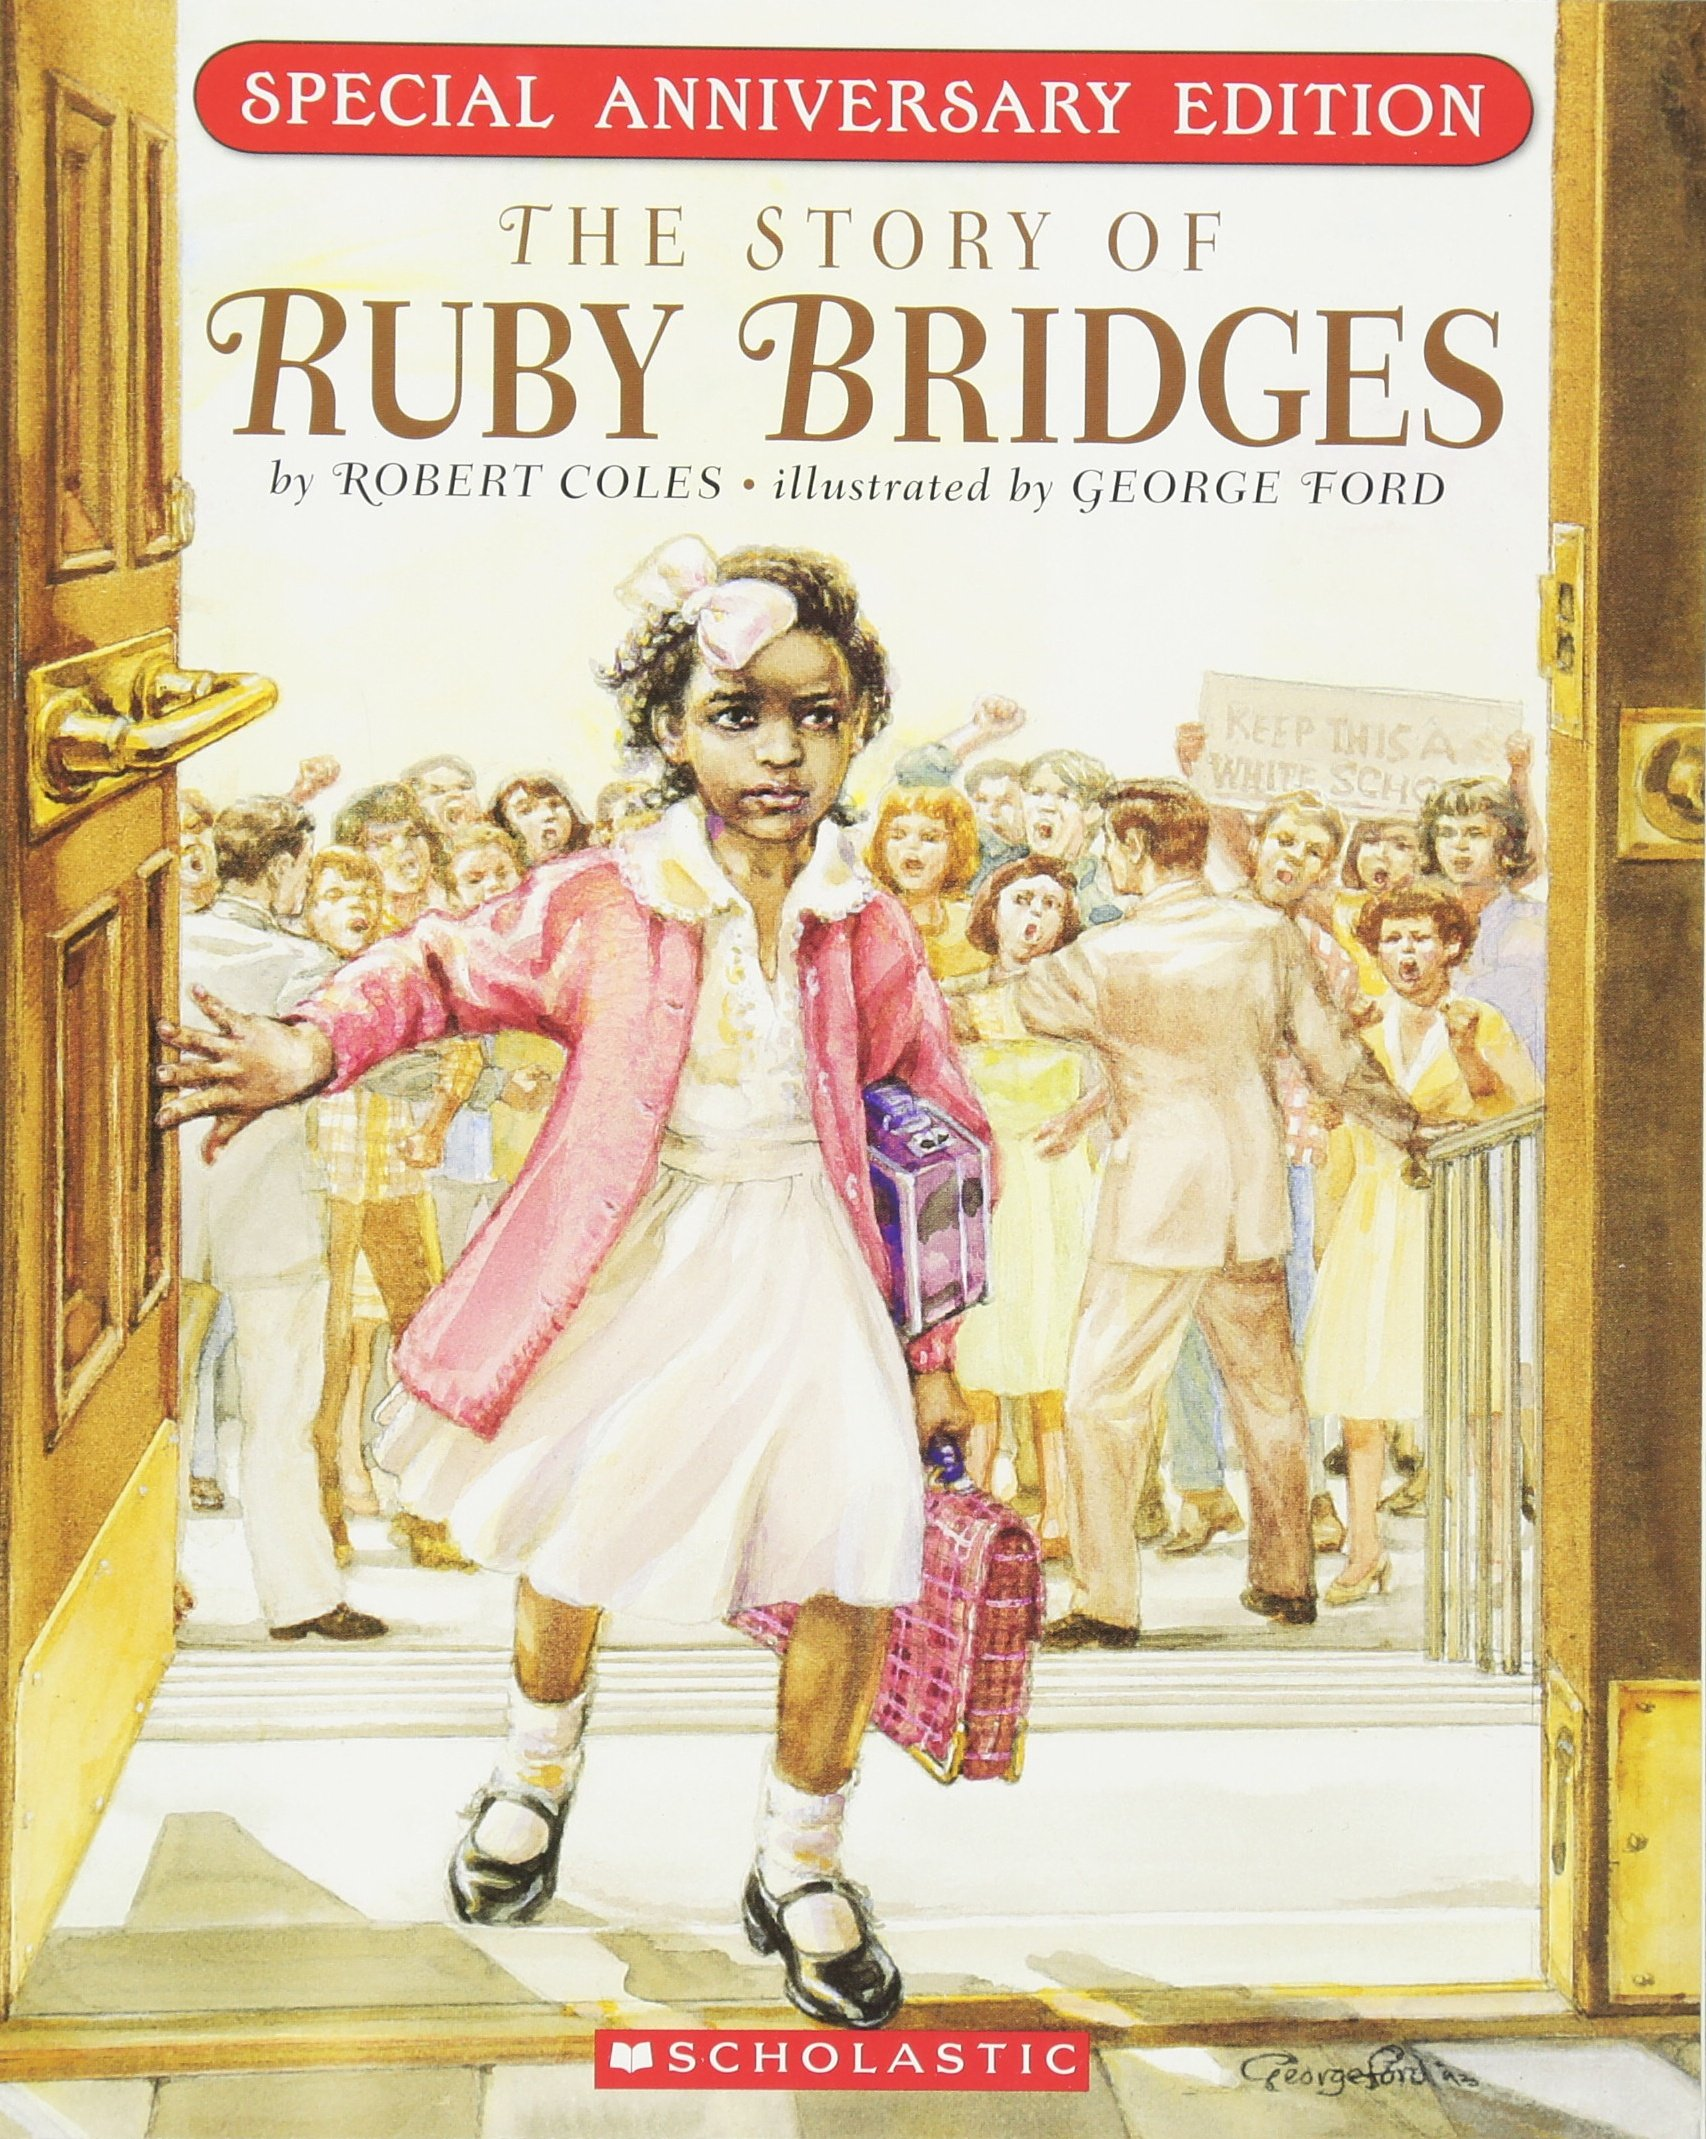 Image result for ruby bridges book